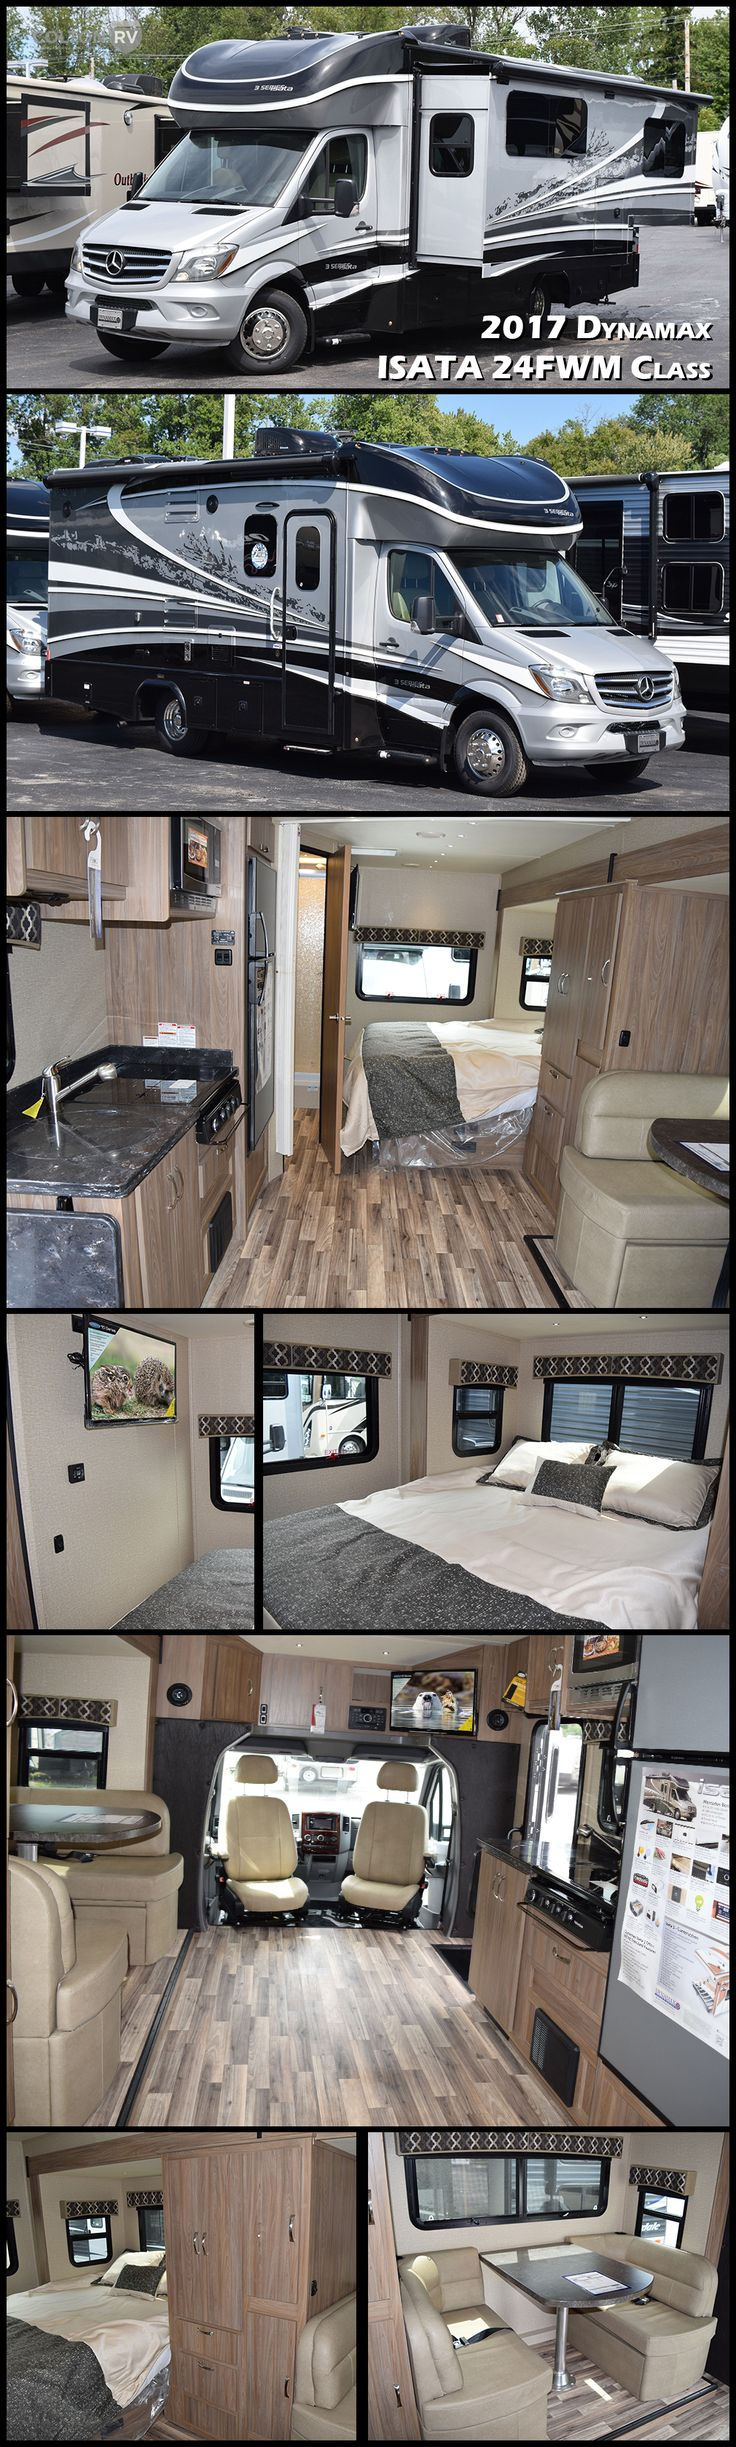 Small class c rv models quotes - Built On The Fuel Efficient Mercedes Sprinter Platform The 2017 Dynamax Isata 3 Model Class C Motorhome Embodies Everything You Love About Dynamax